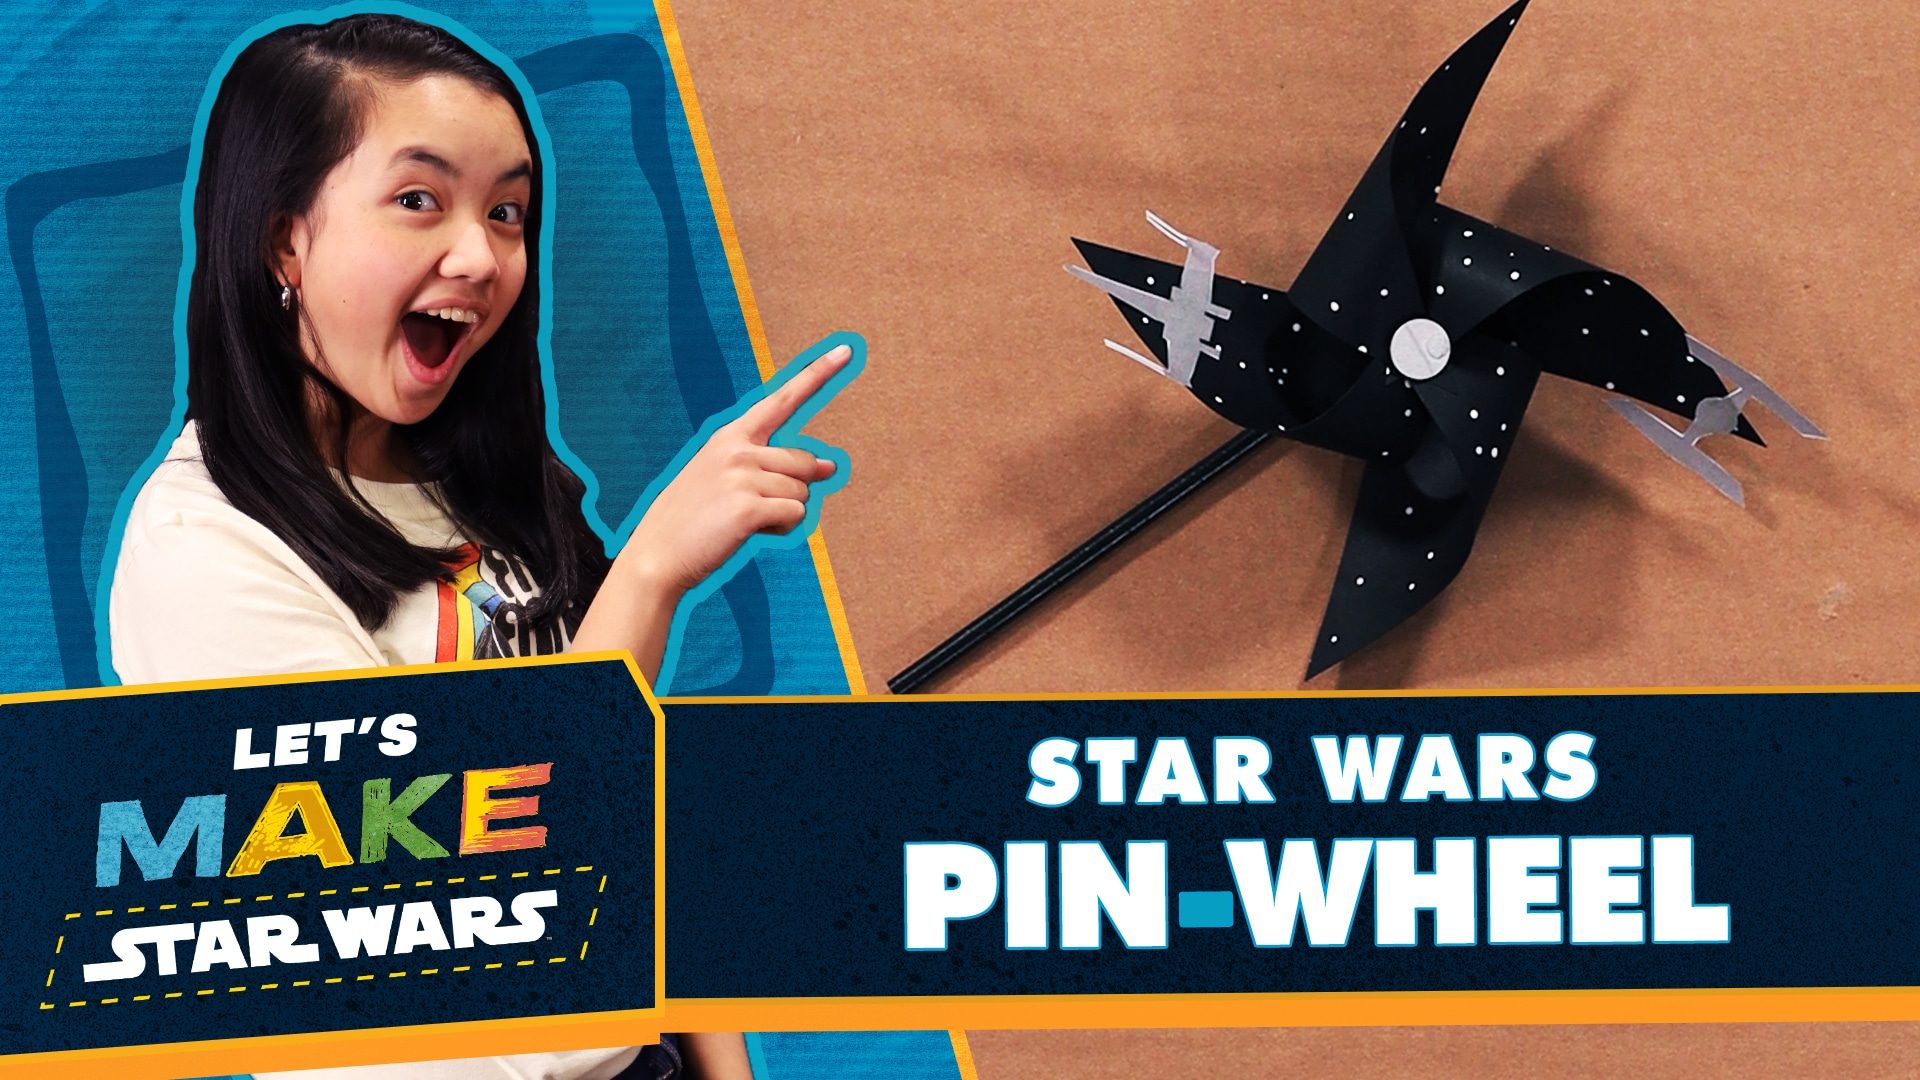 Let's Make Star Wars - How to Make a Star Wars Pinwheel